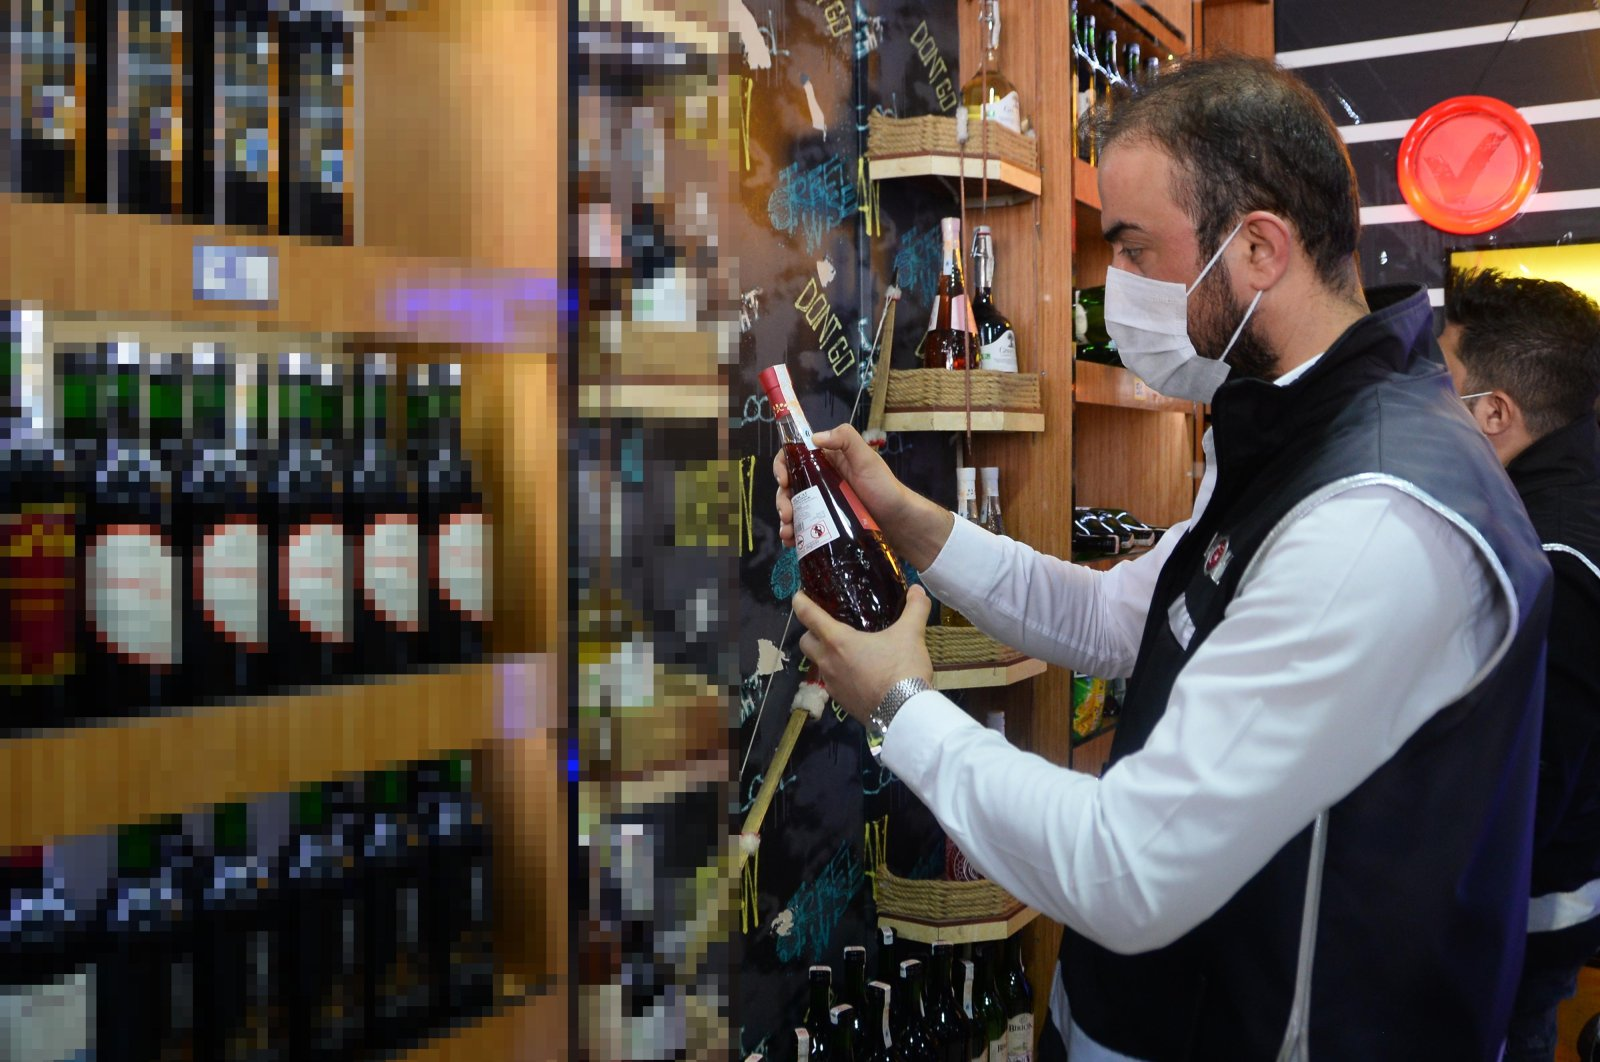 A police officer inspects a liquor store to detect possible bootleg drinks in Mersin, southern Turkey, Oct. 13, 2020. (DHA Photo)